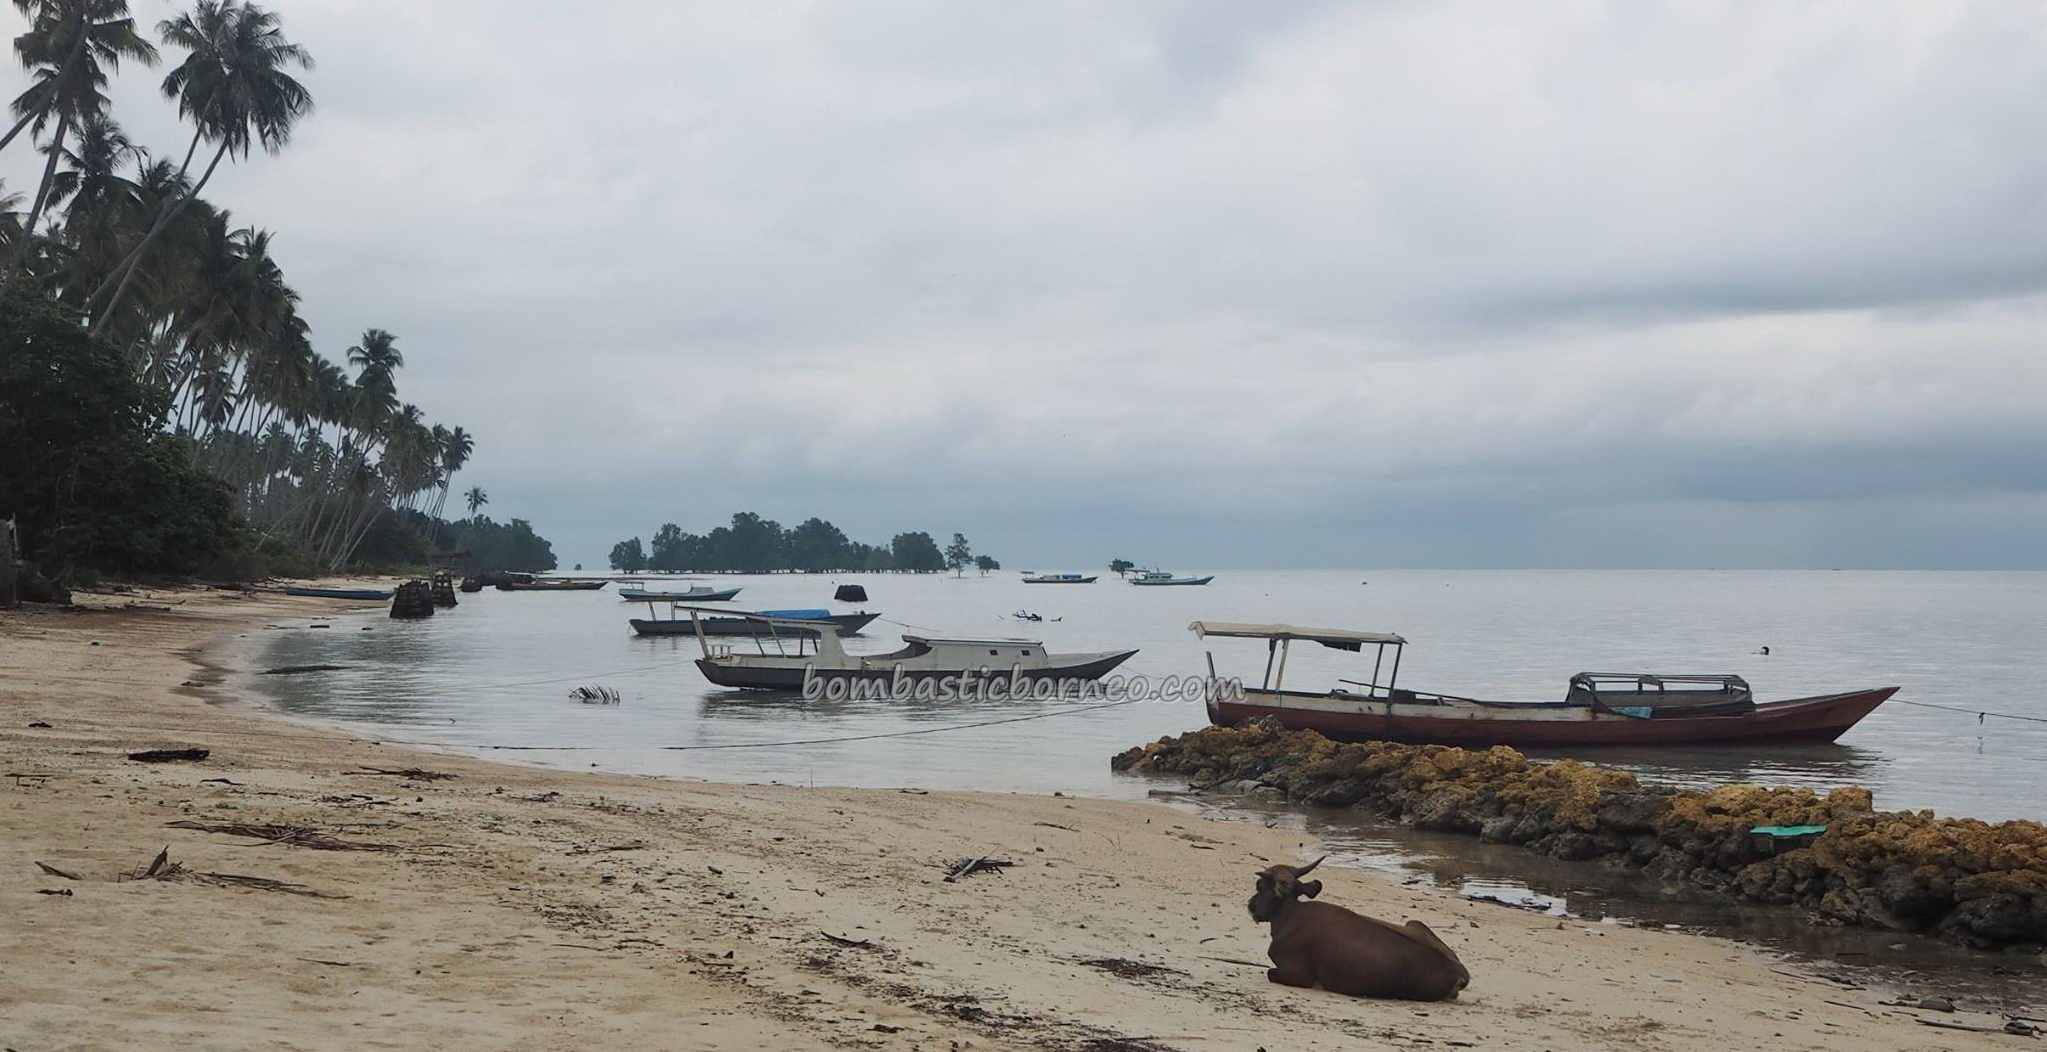 white sandy beach, fishing village, Kampung, outdoor, authentic, Berau, Indonesia, holiday, obyek wisata, Tourism, tourist attraction, travel guide, transborder, 婆罗洲, 旅游景点